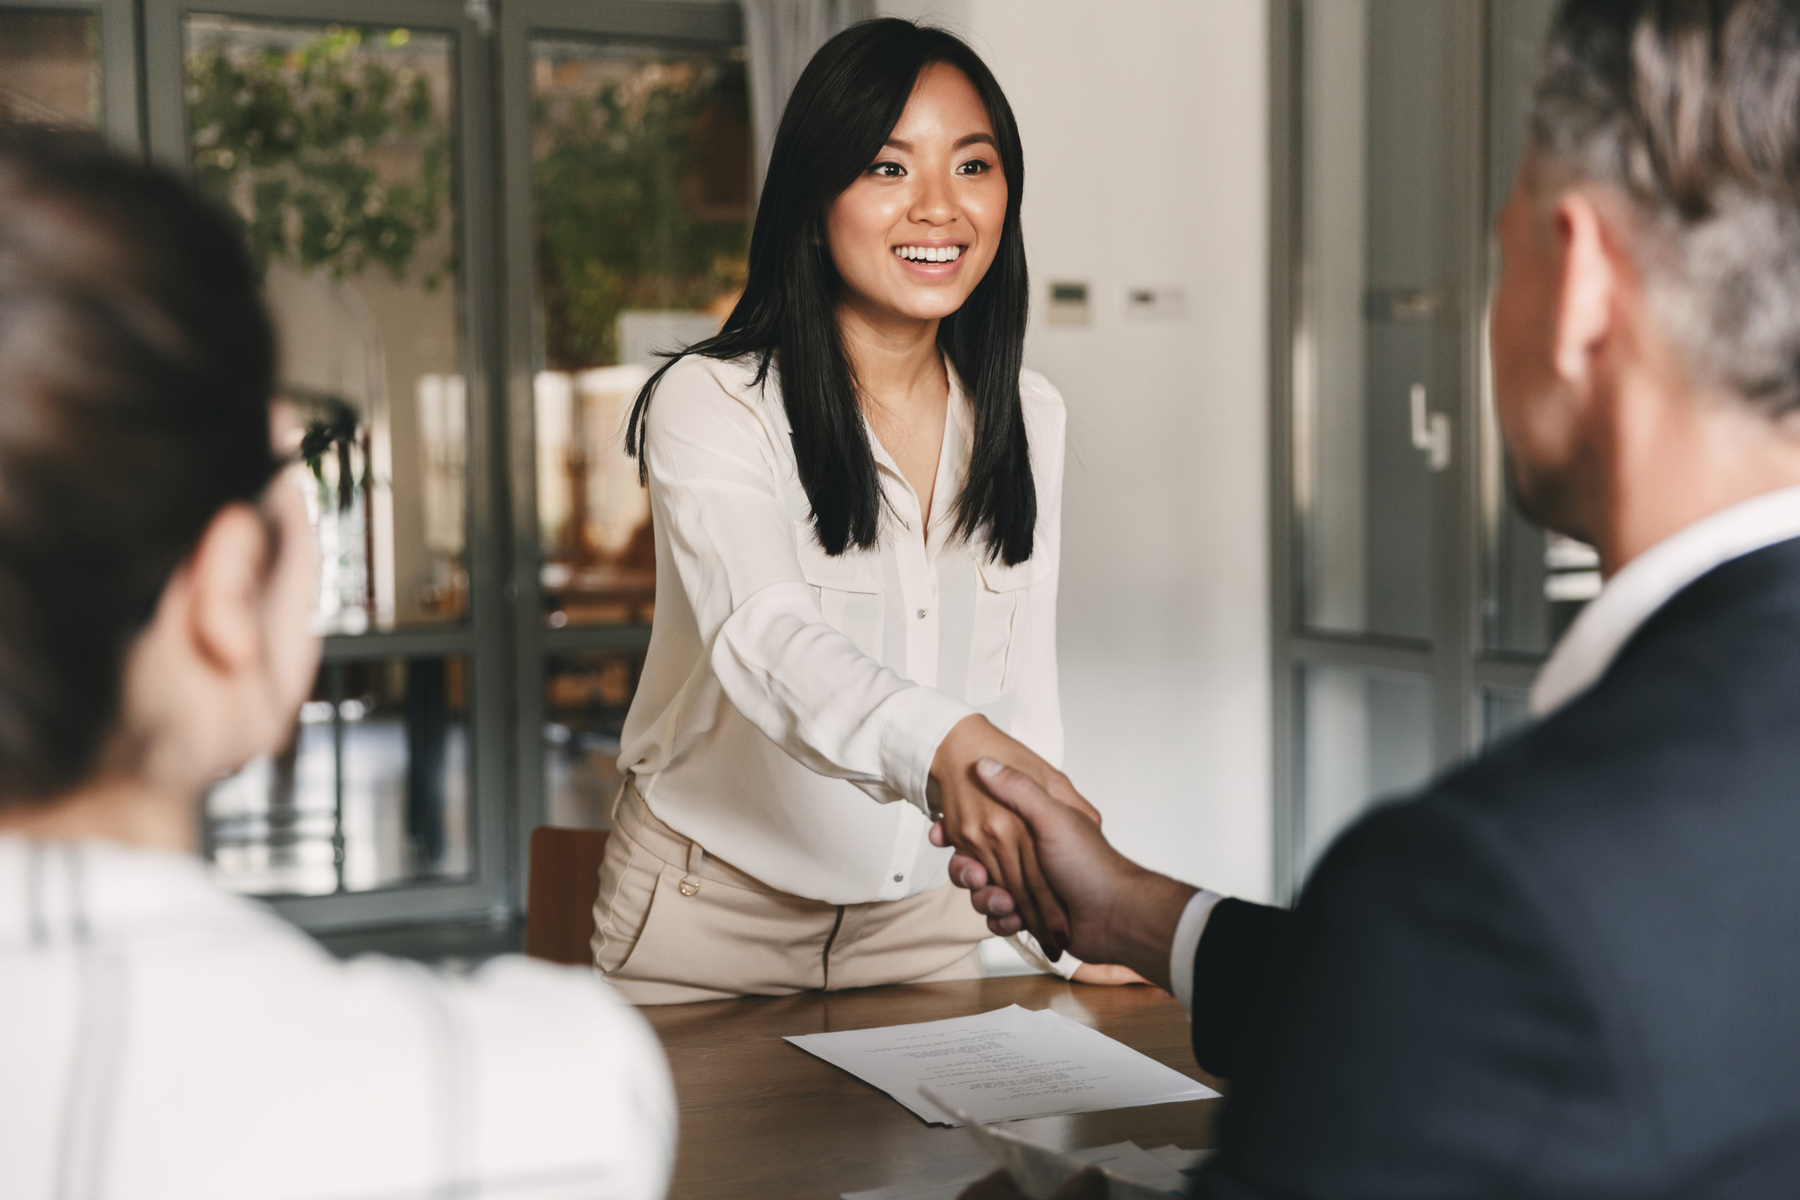 Applicant giving a handshake at a job interview